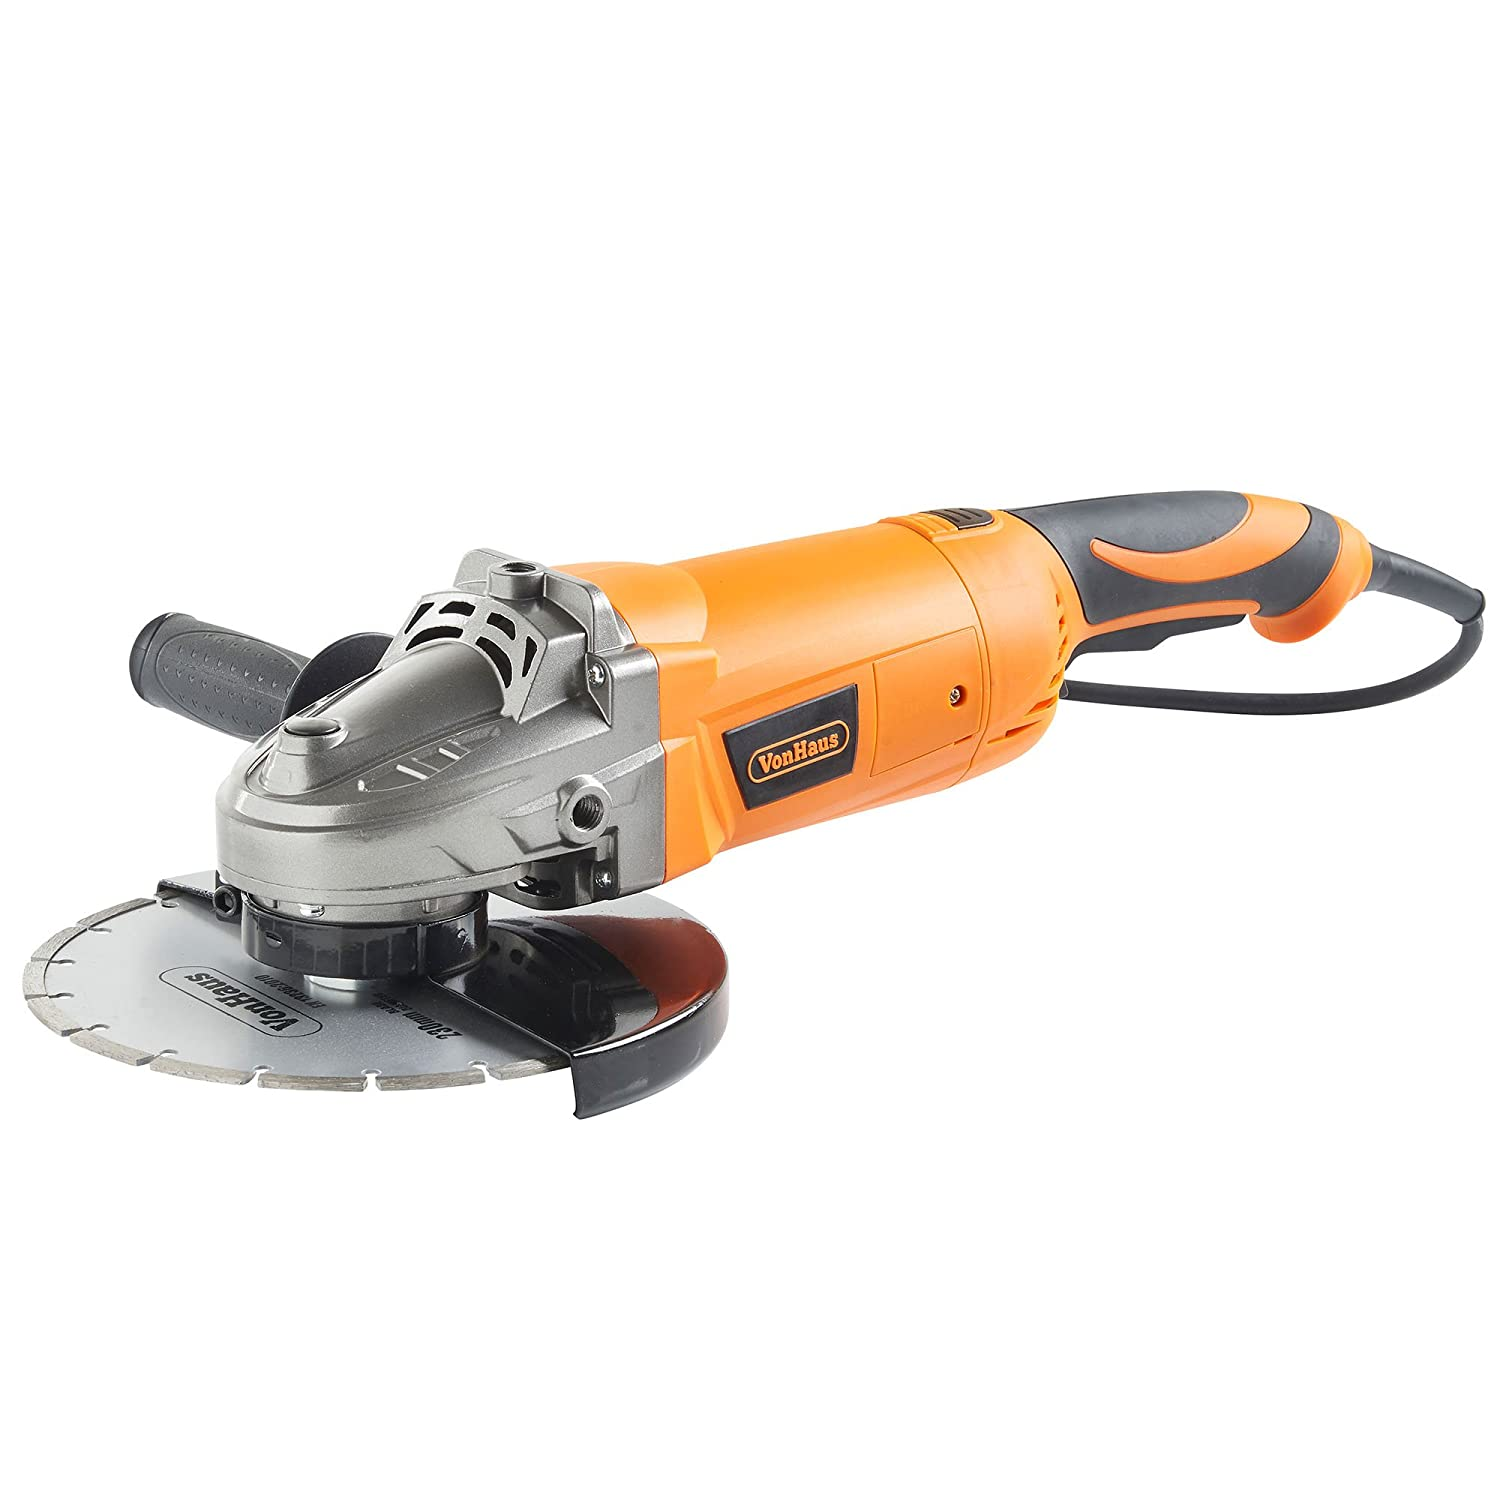 VonHaus 2200W 230mm 9 Angle Grinder Supplied With Diamond Tipped Cutting Disc Rotating Rear Handle